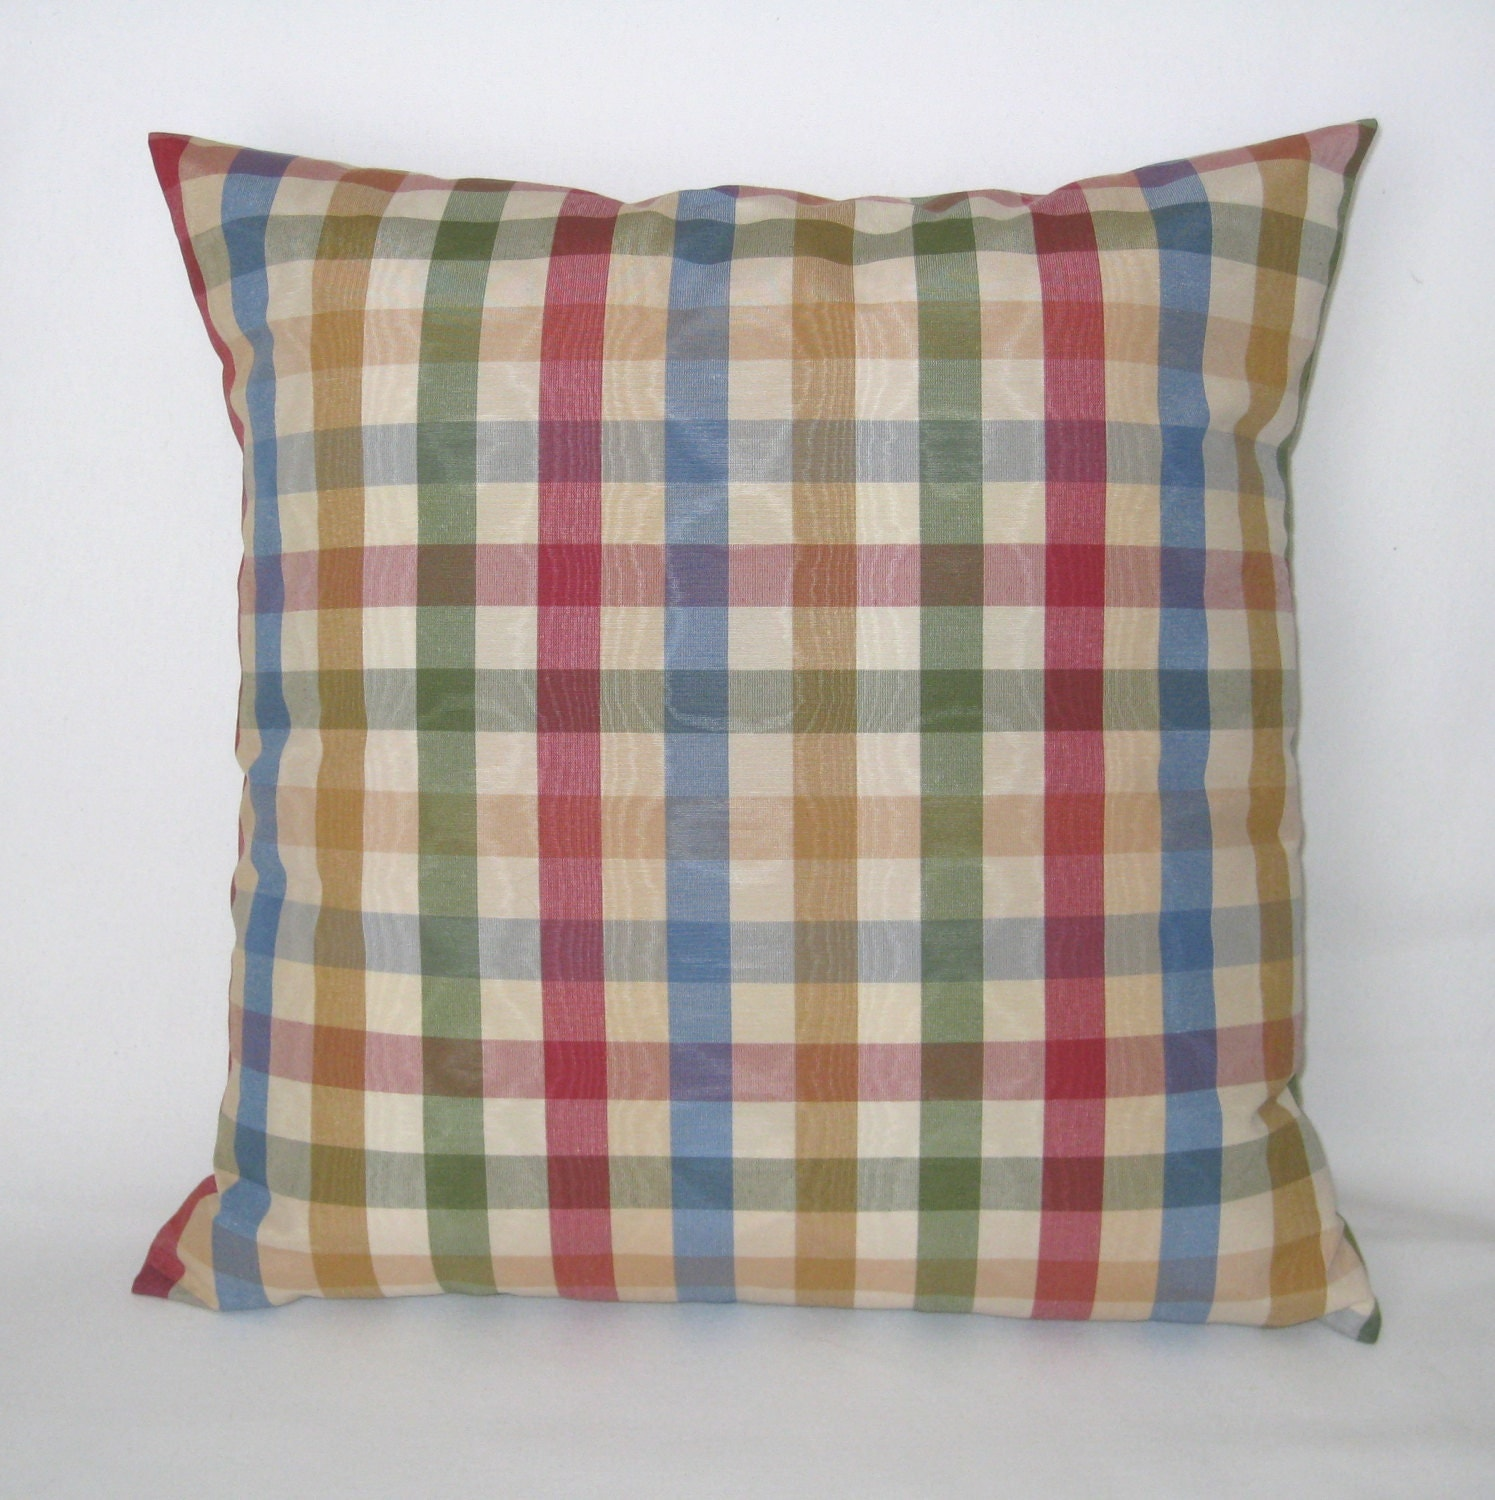 Throw Pillow Covers 20 X 20 : ACCENT PILLOW COVER 20 x 20 Throw Pillow